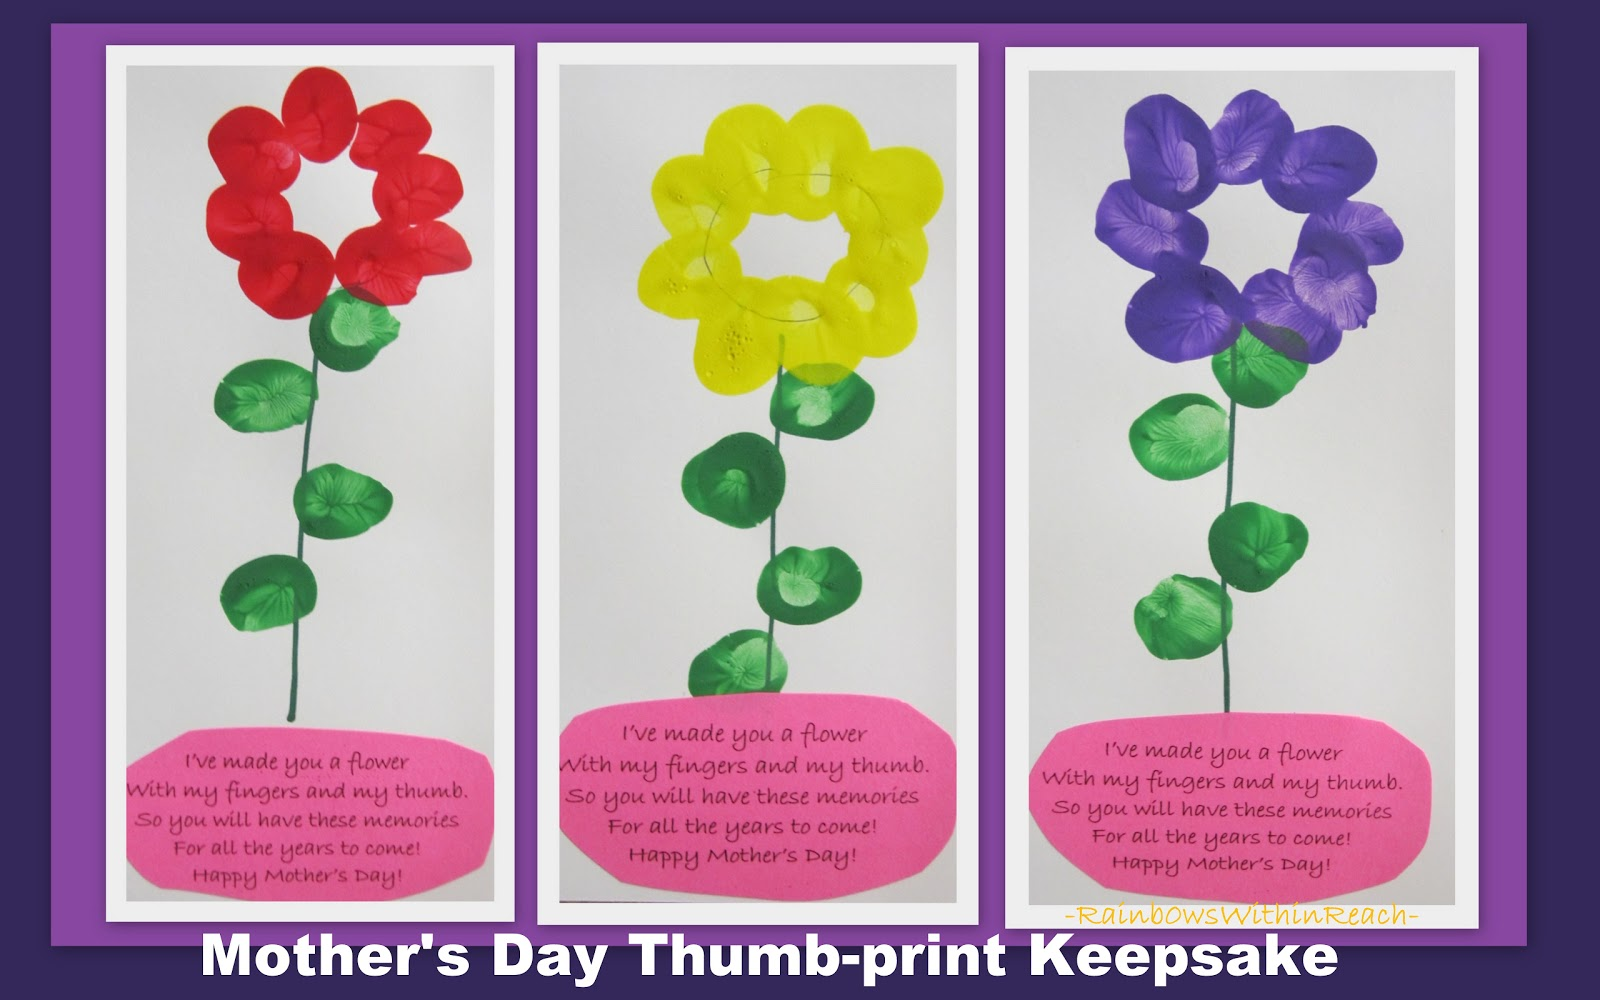 mothers day poems for preschoolers www rainbowswithinreach 304